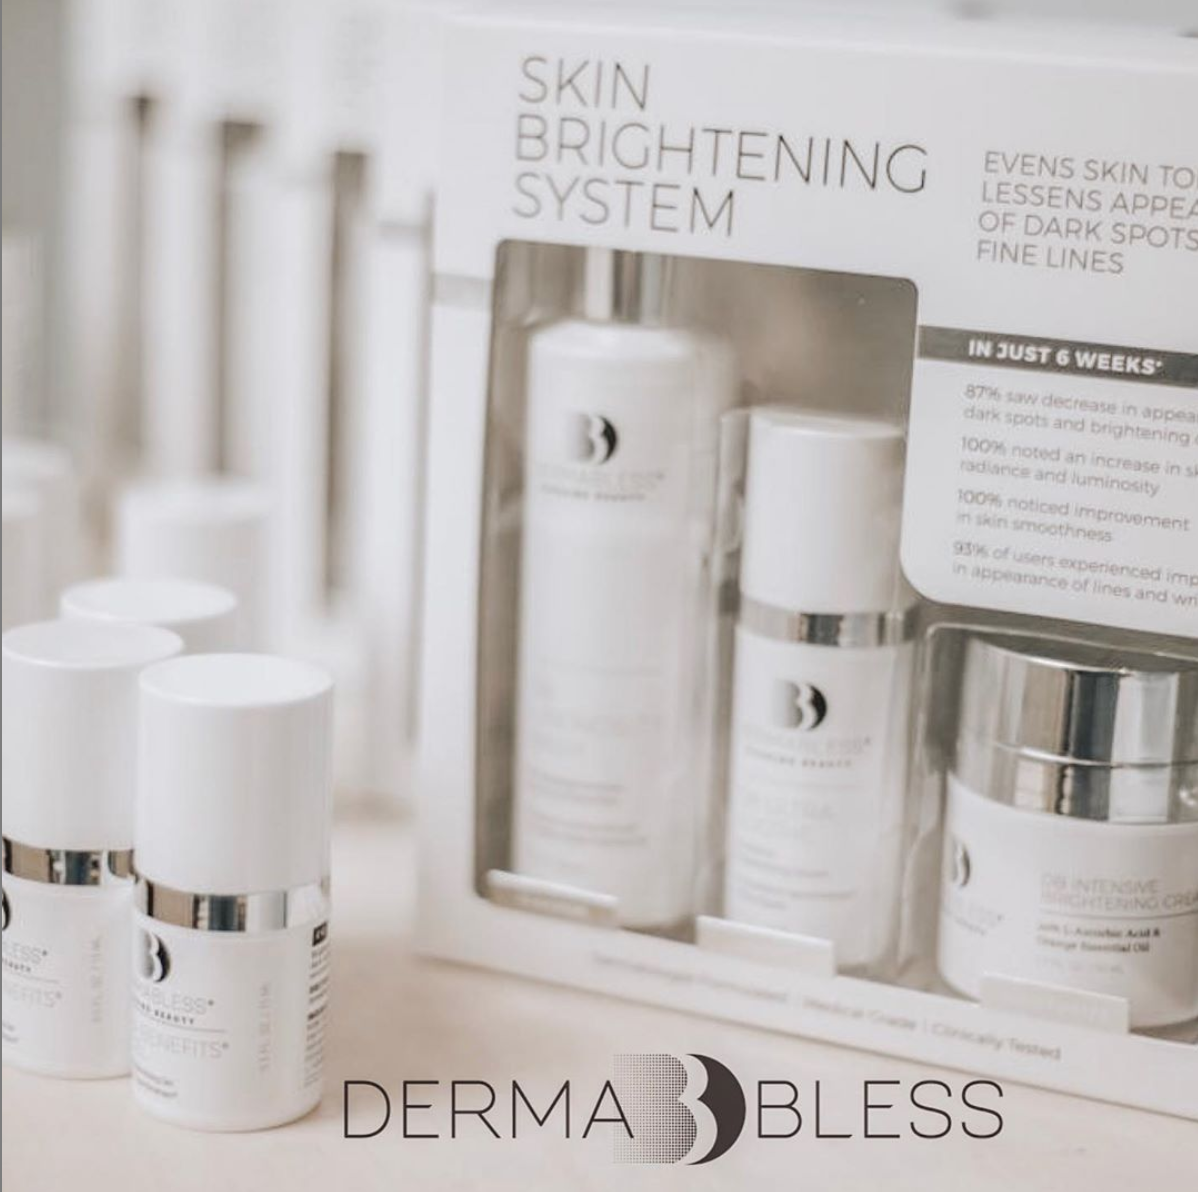 Dermabless Offers An Exclusive Line of Quality Skin Care Products Created Especially for Its Distinguished Clients